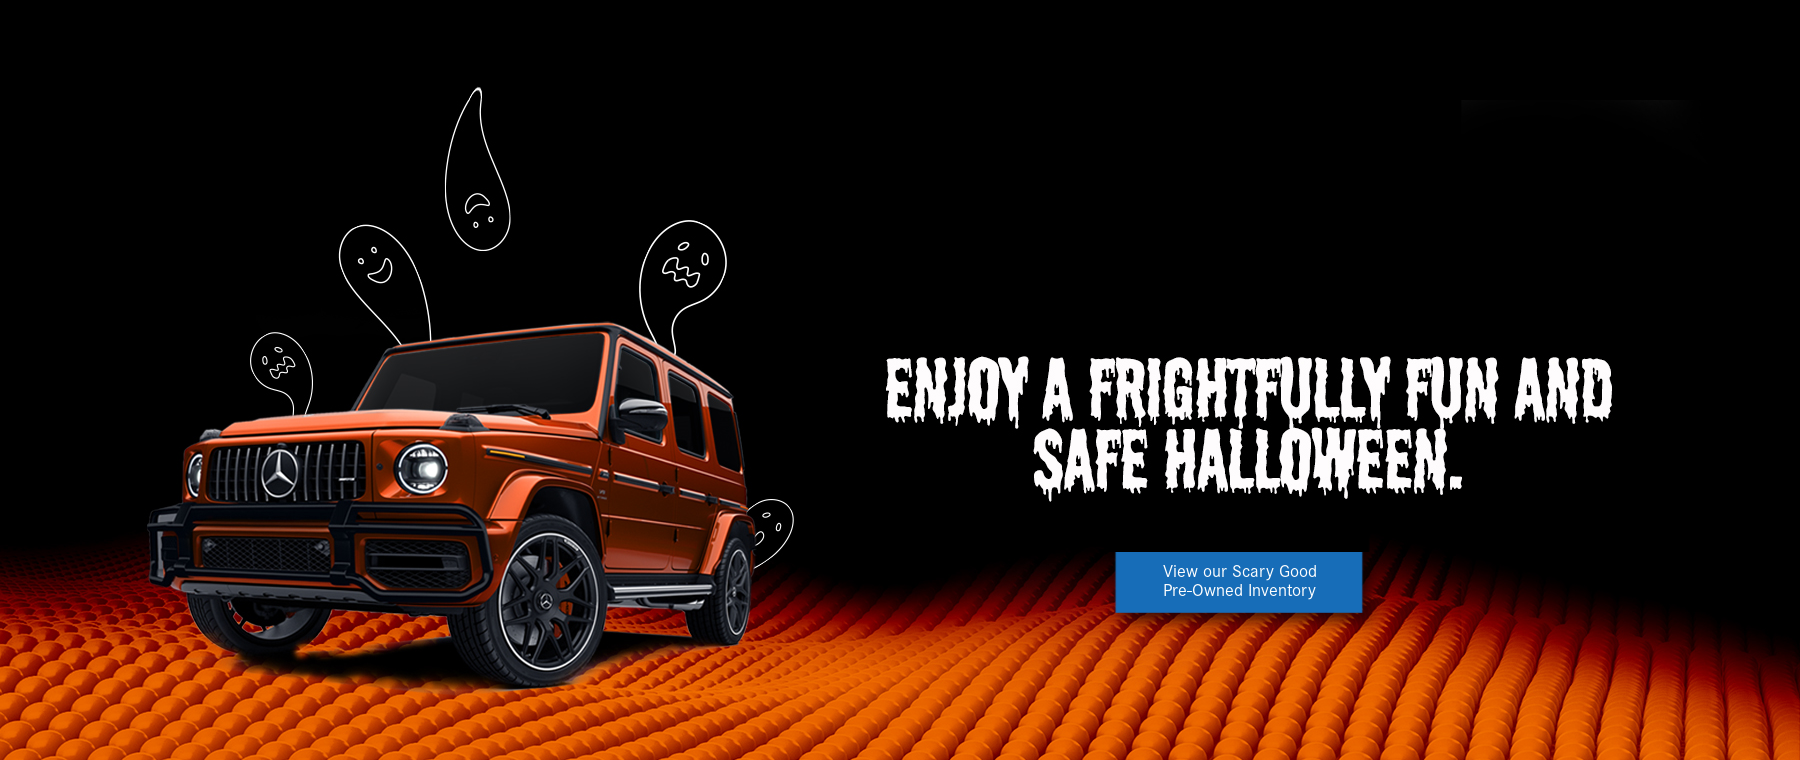 Halloween-Pre-Owned-Banner-1800 x 760